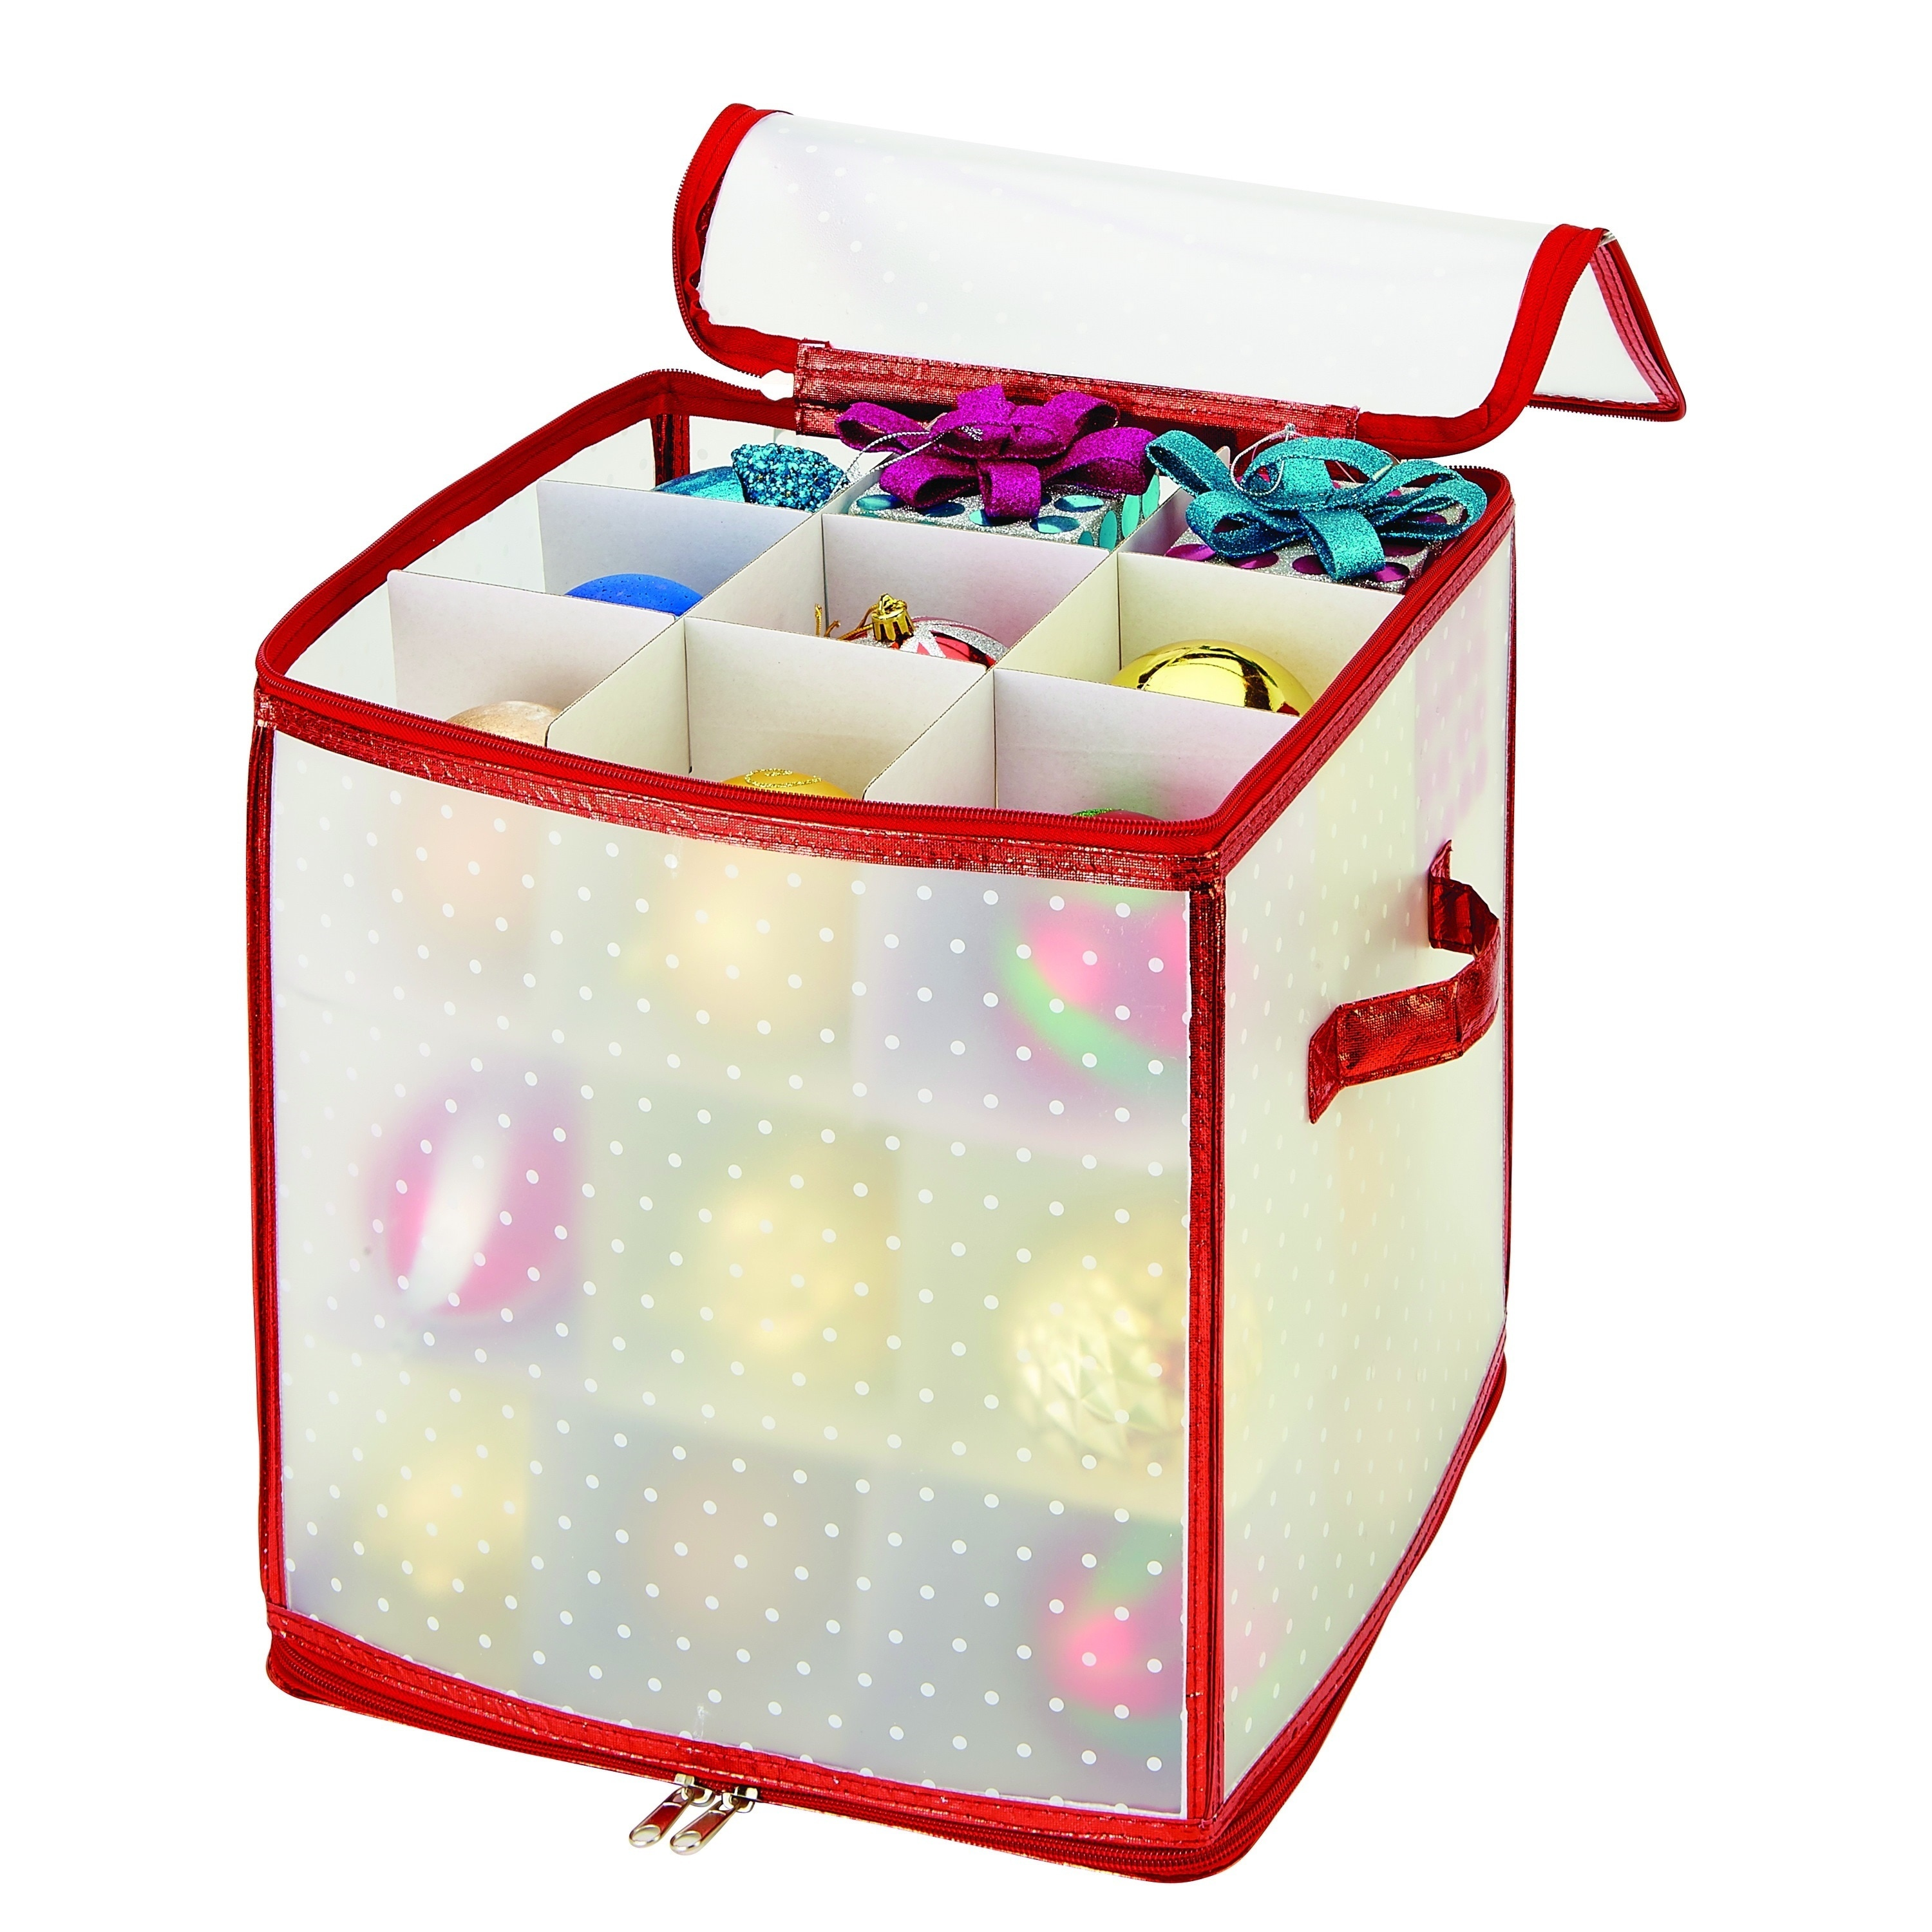 Simplify Red 27-count Ornament Organizer (27 Count, Red) ...